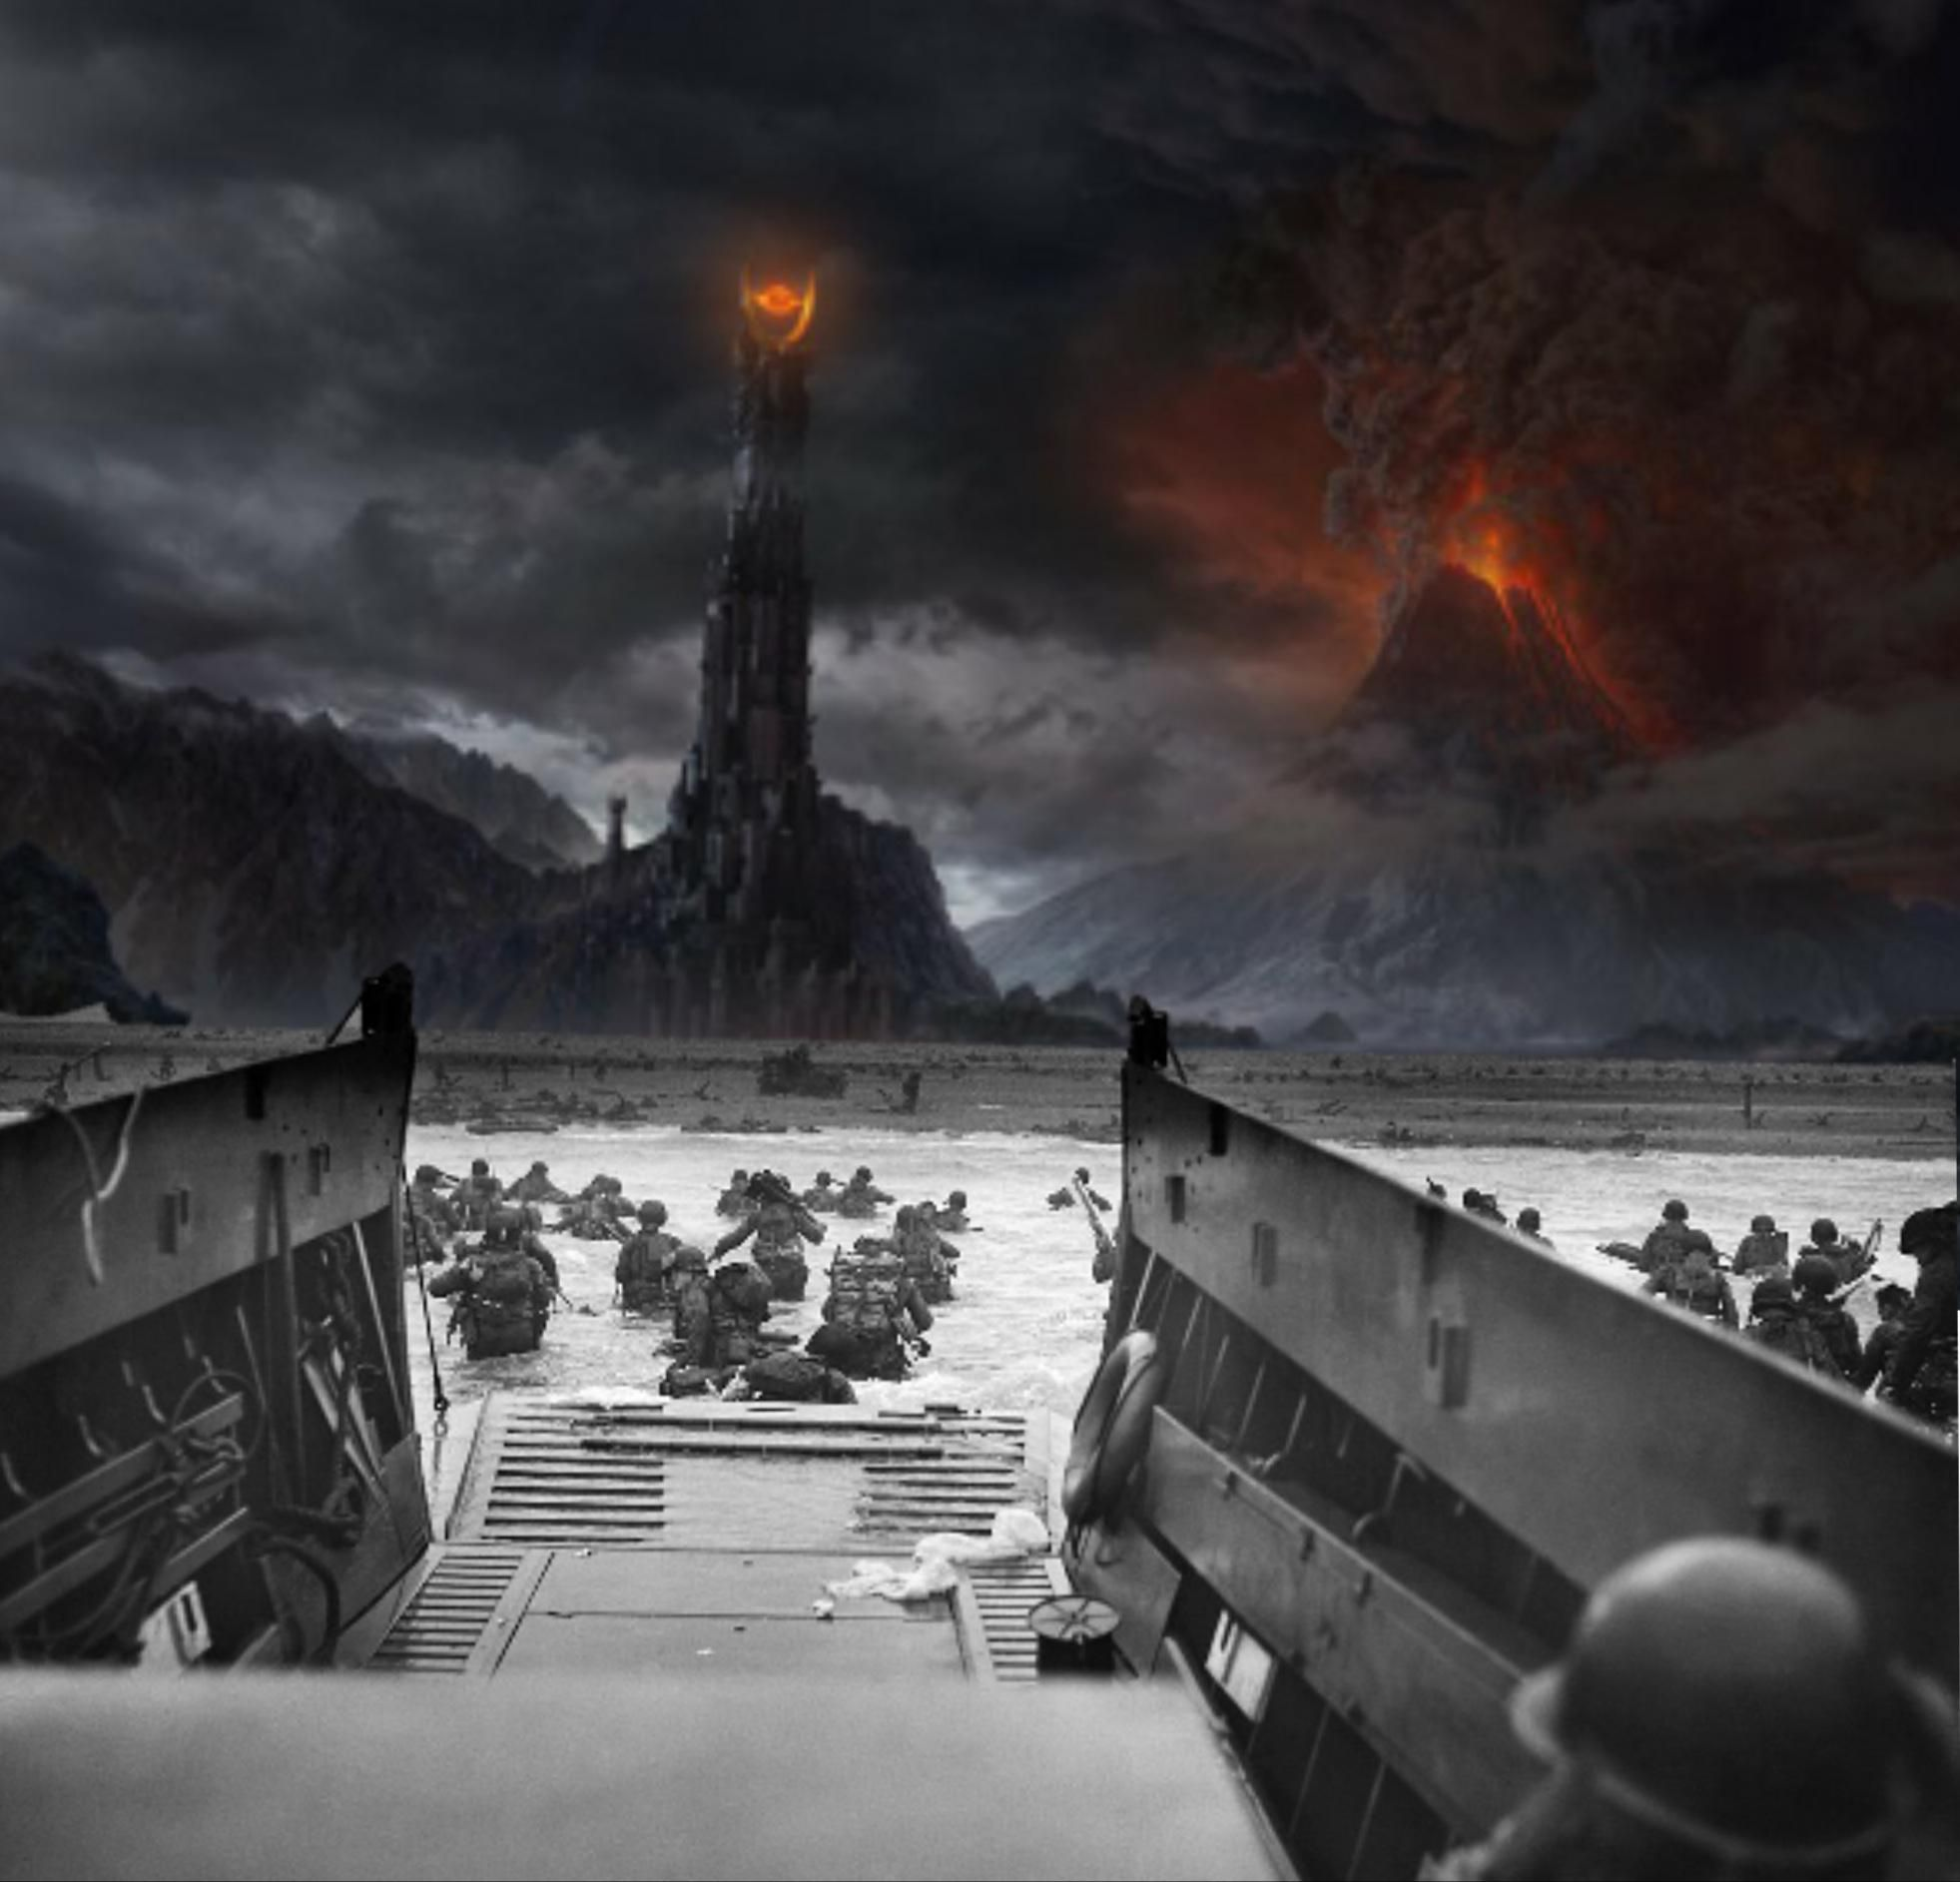 Let us never forget those who fought against Sauron occupation.